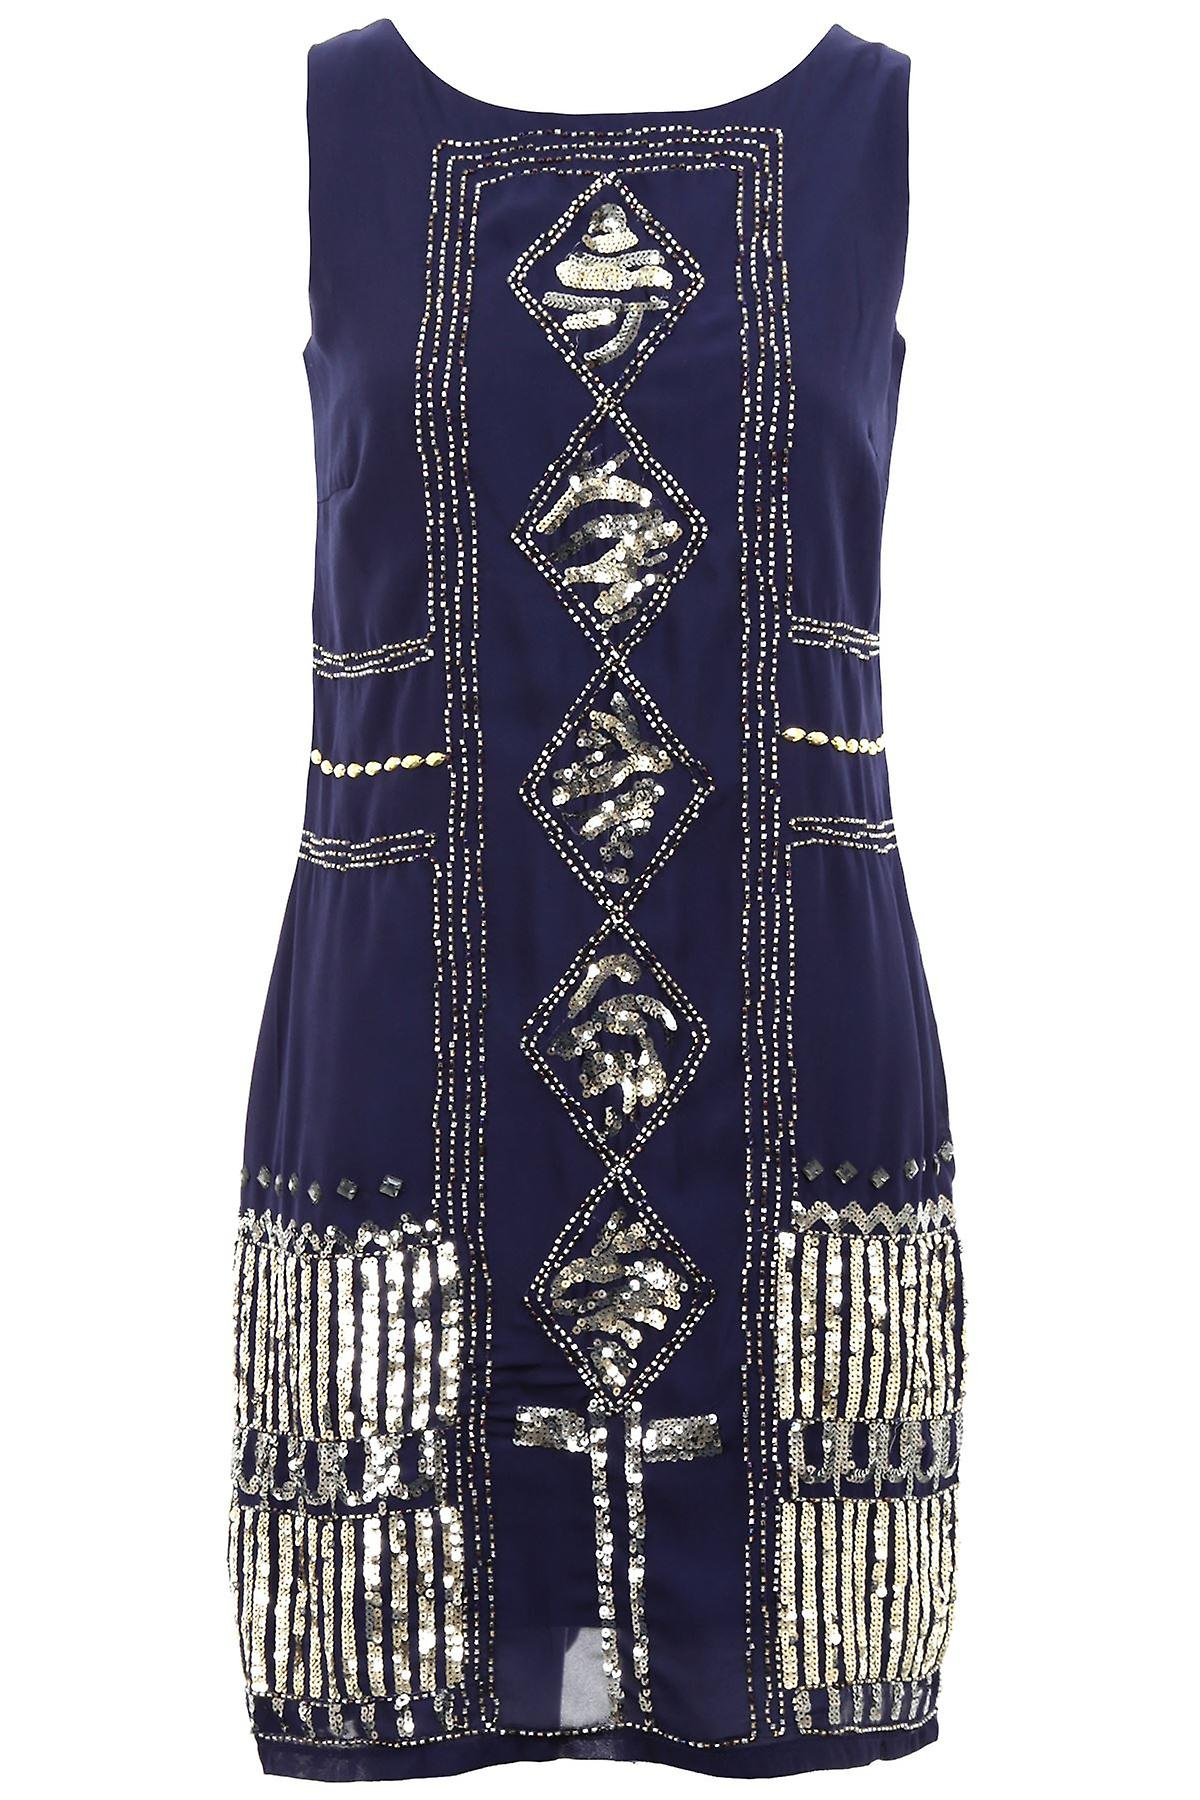 Womens Hand Beaded Golden Silver Sequin Ladies Evening Party Dress